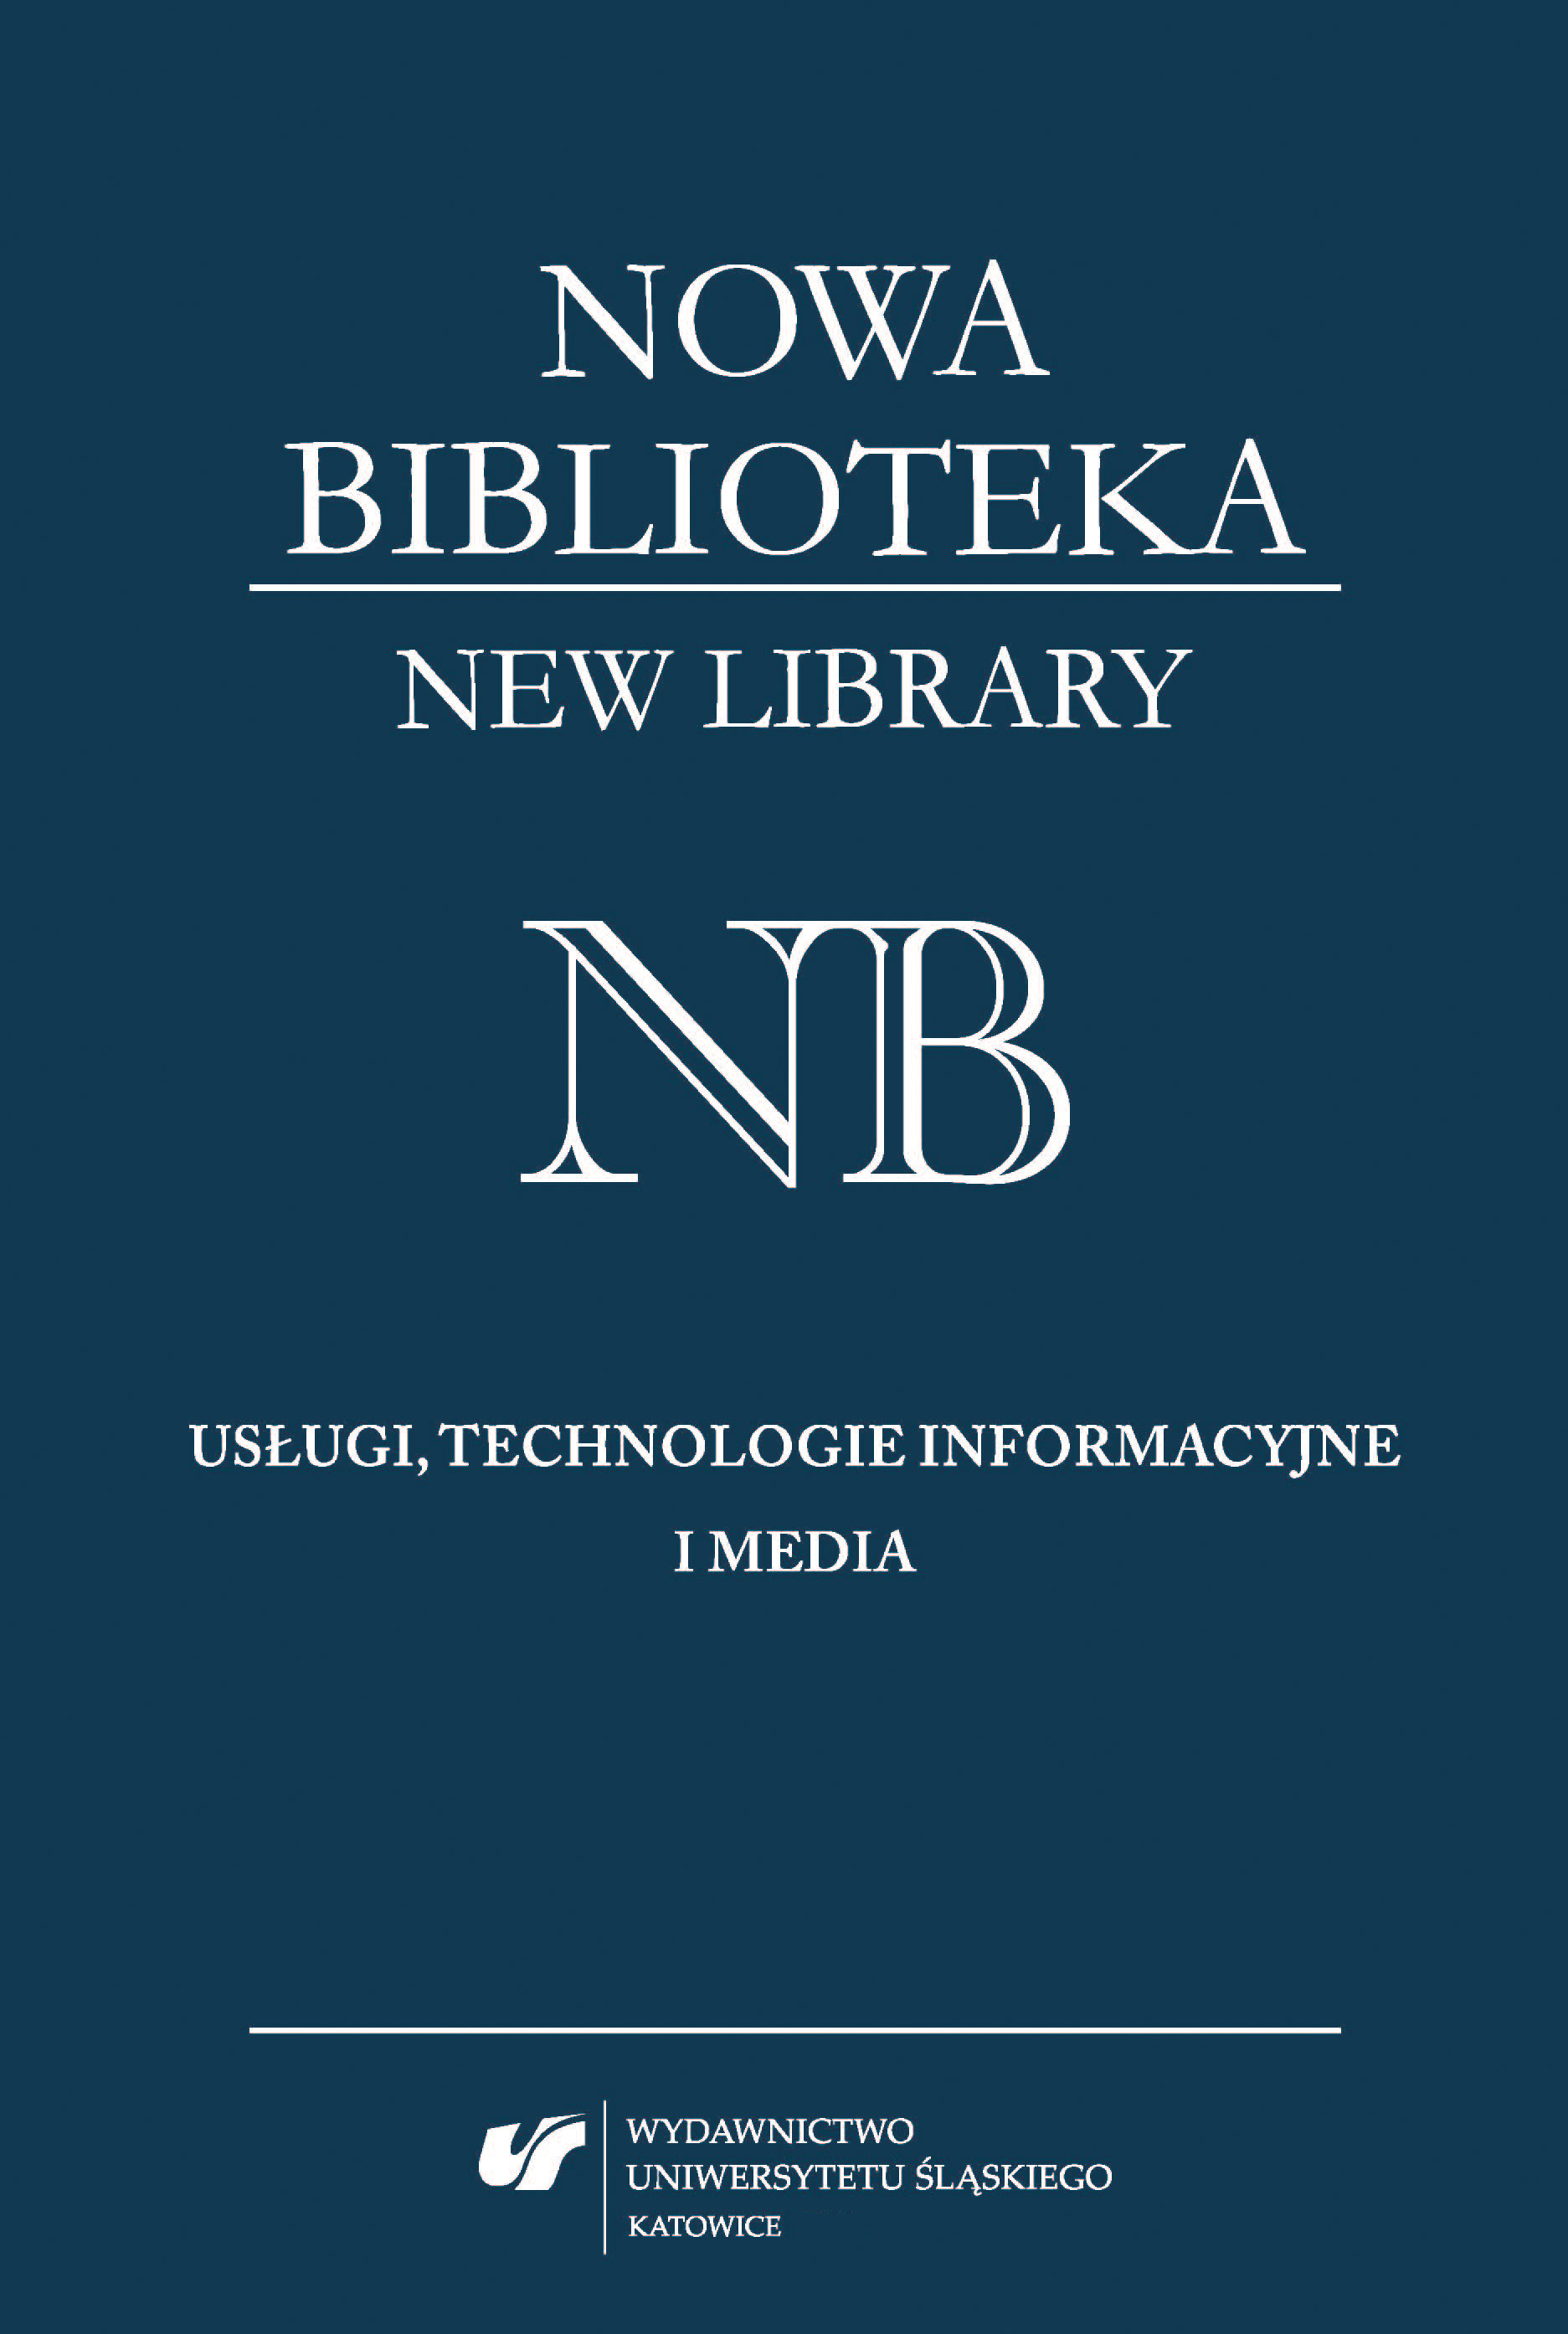 New Library Cover Image